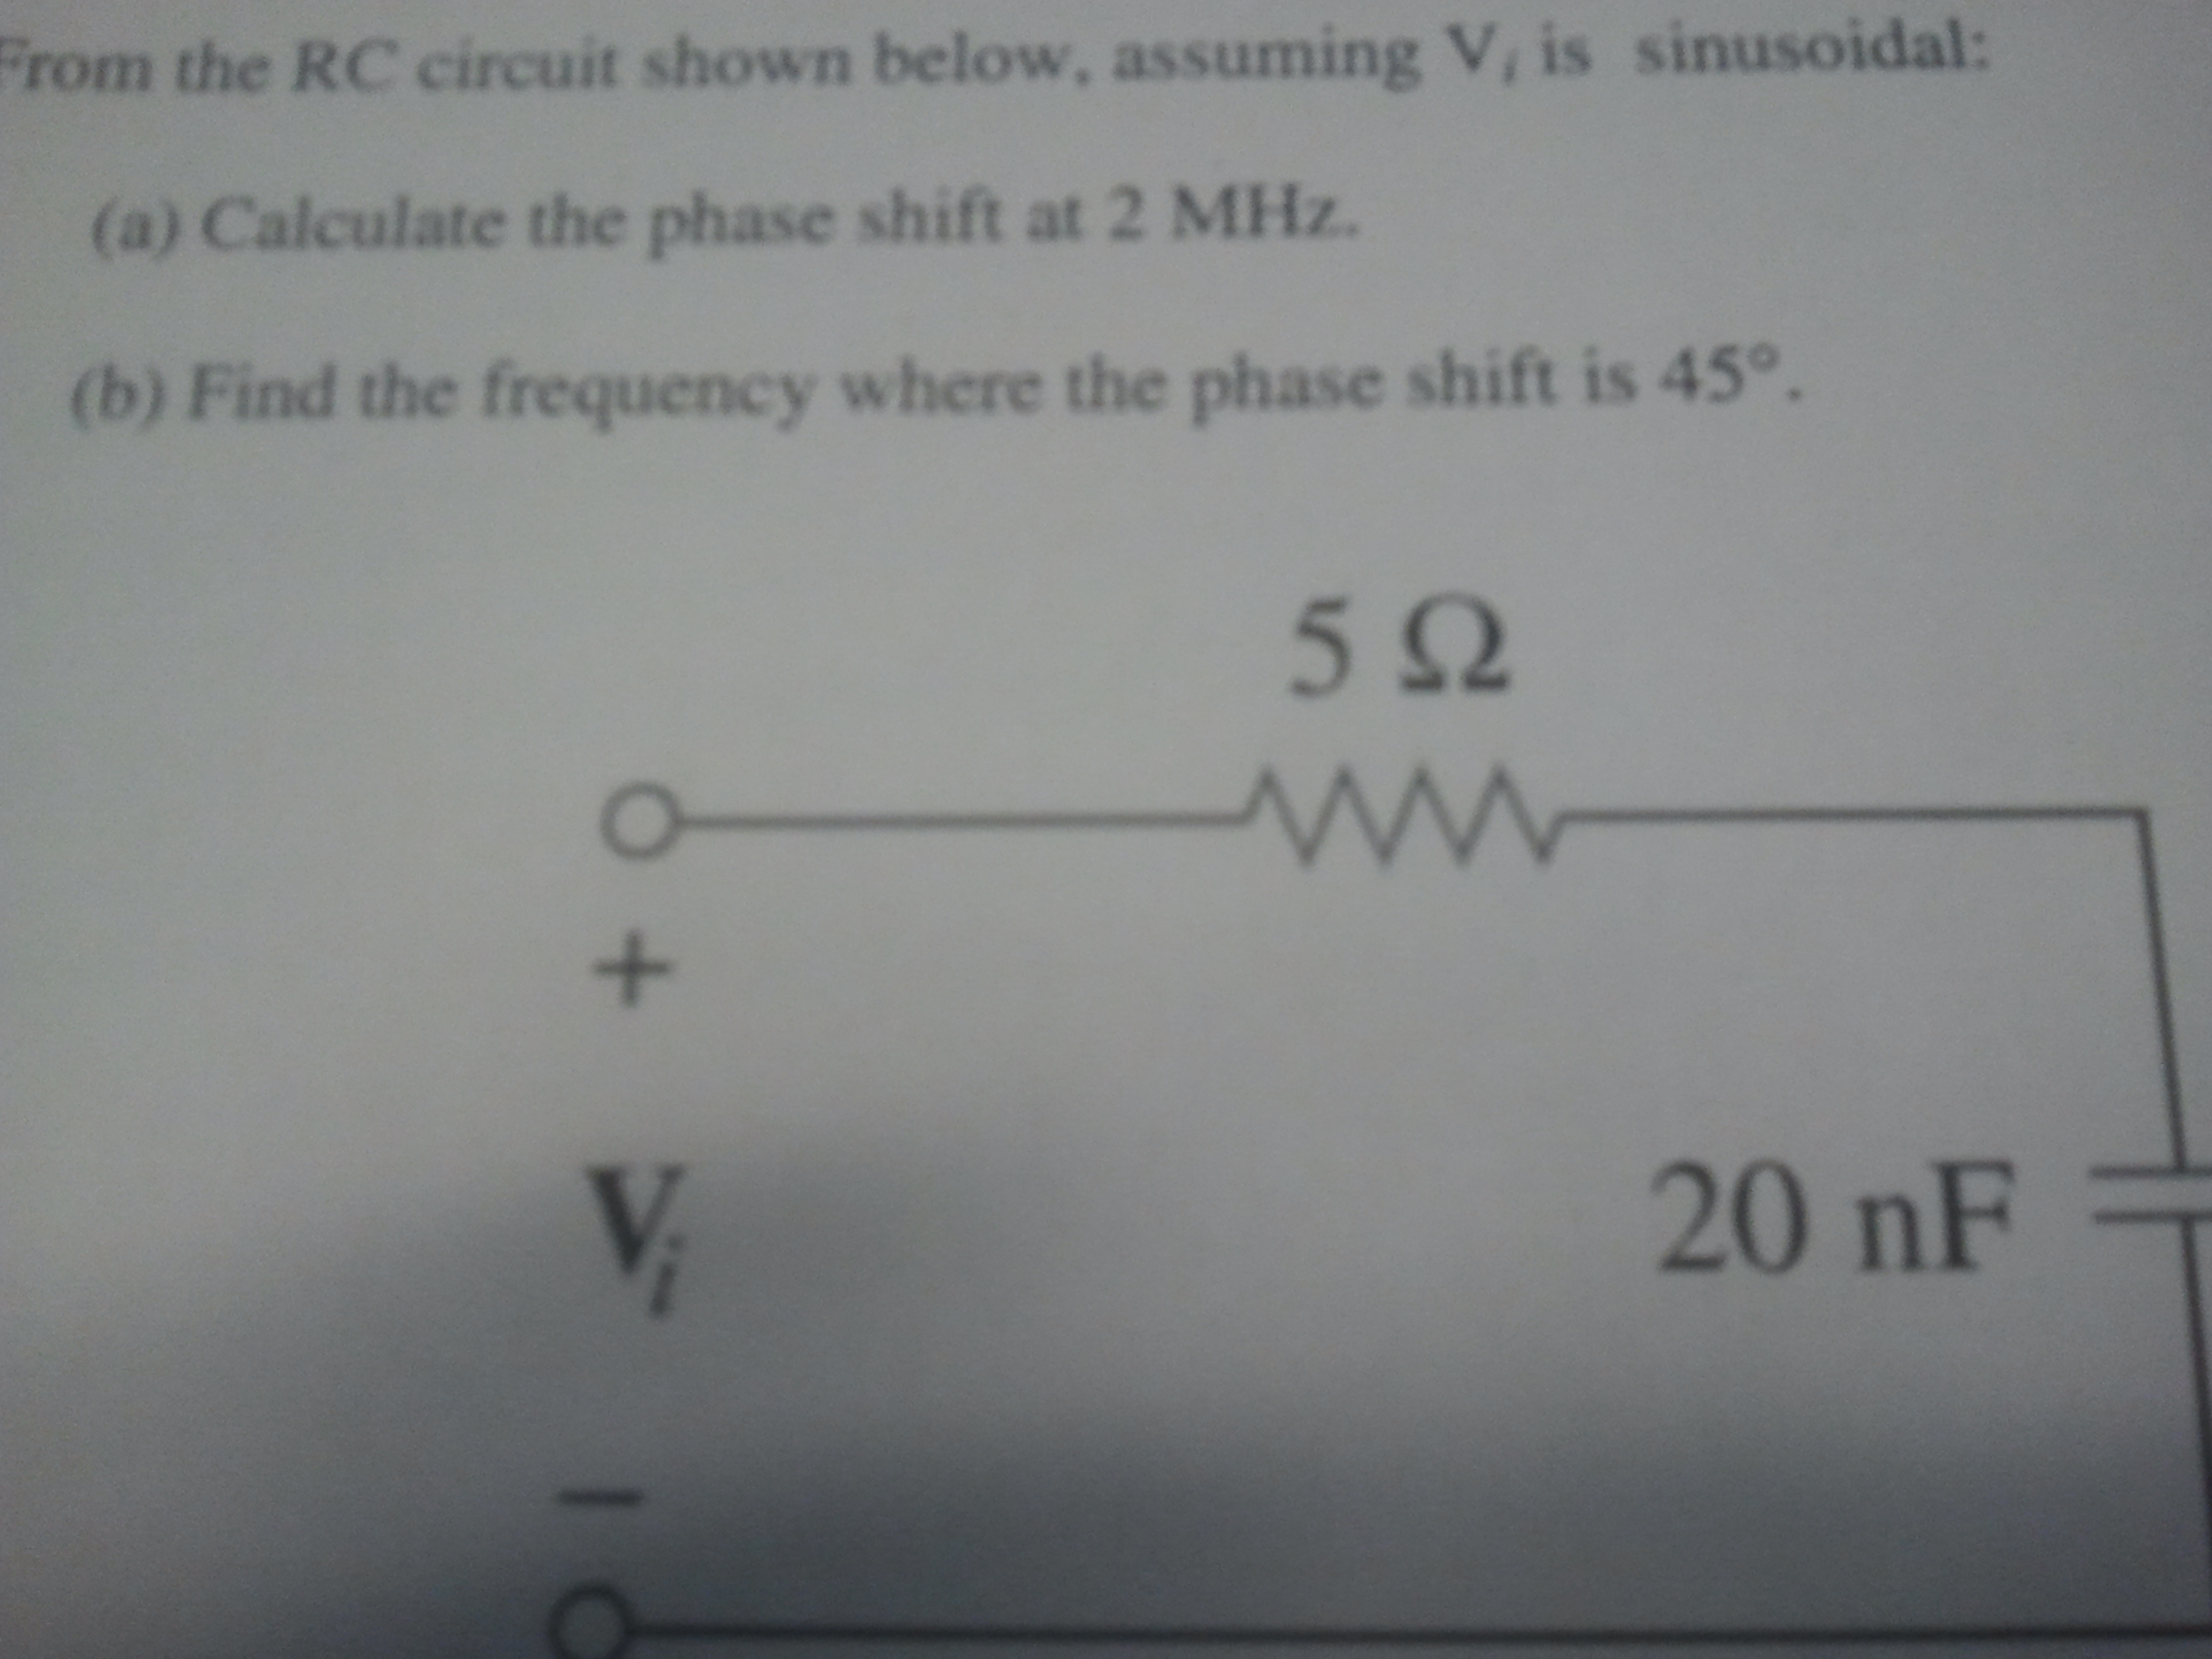 From the RC circuit shown below, assuming V, is si